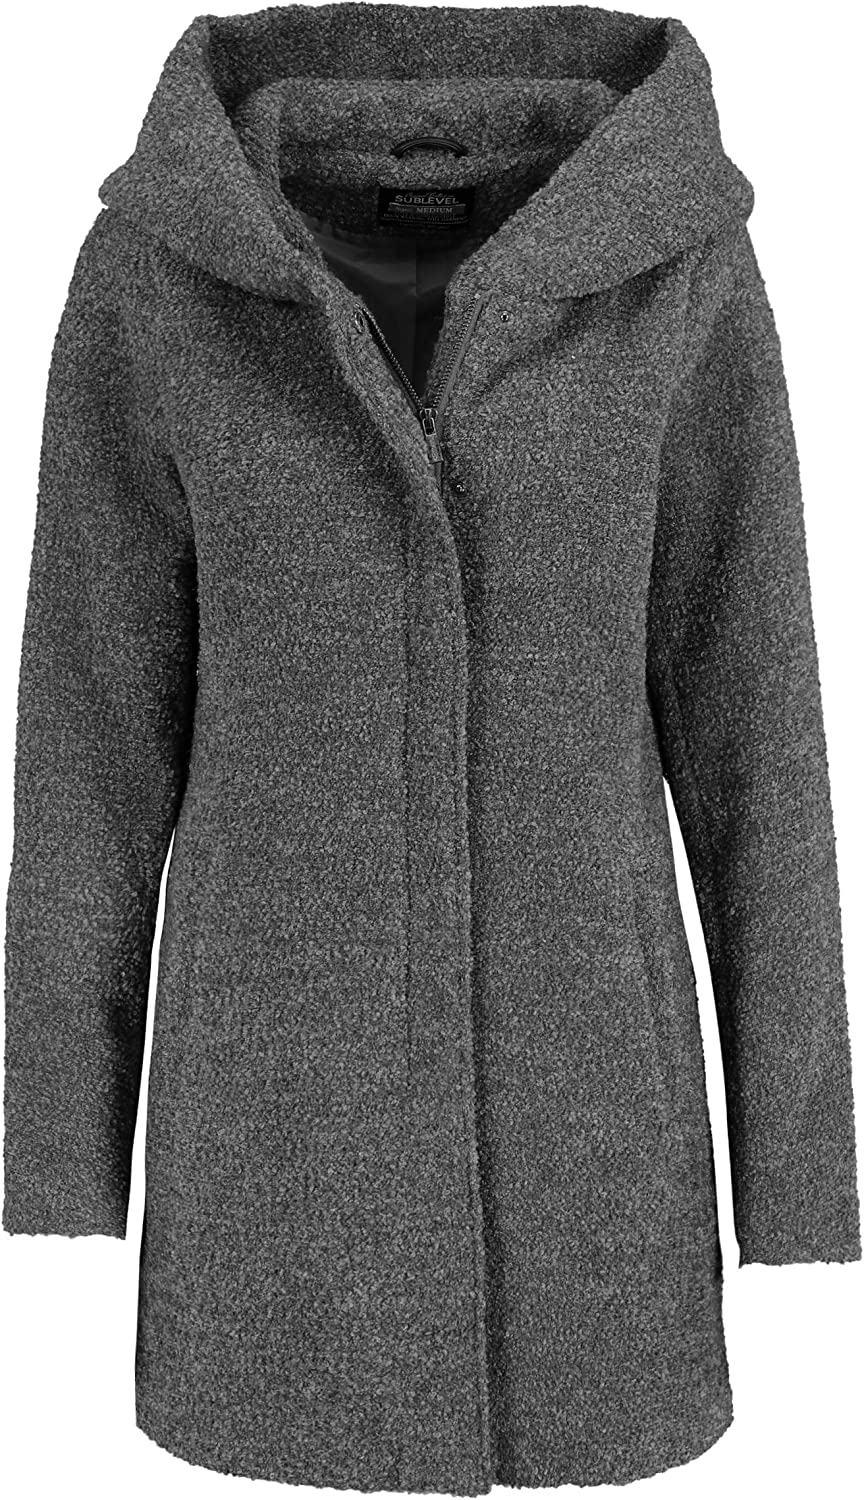 Sublevel Damen Winter-Mantel mit Kapuze aus Woll-Mix Dark-grey